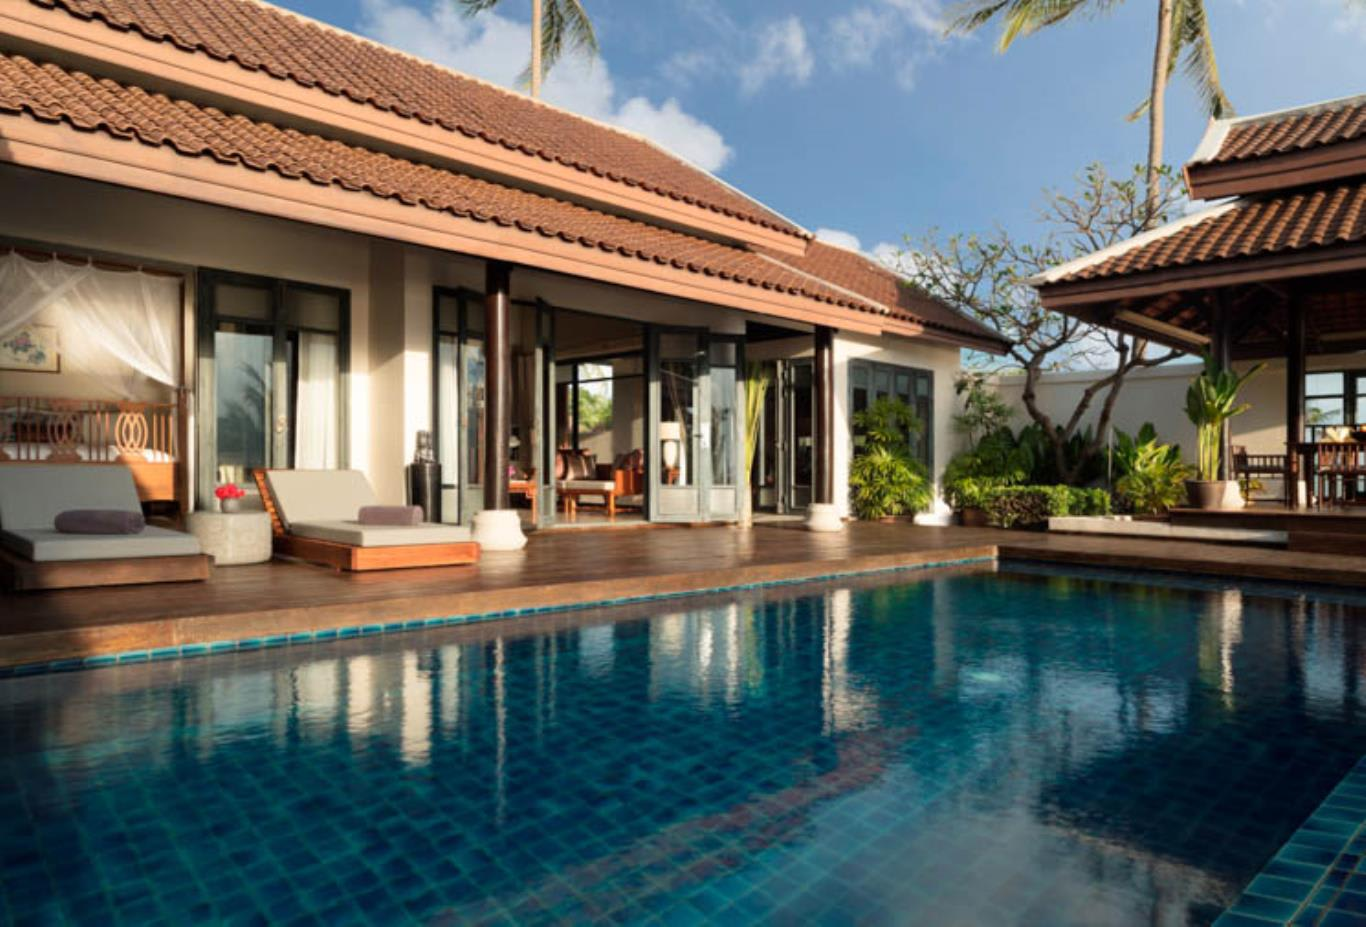 2 Bedroom Villa pool and view